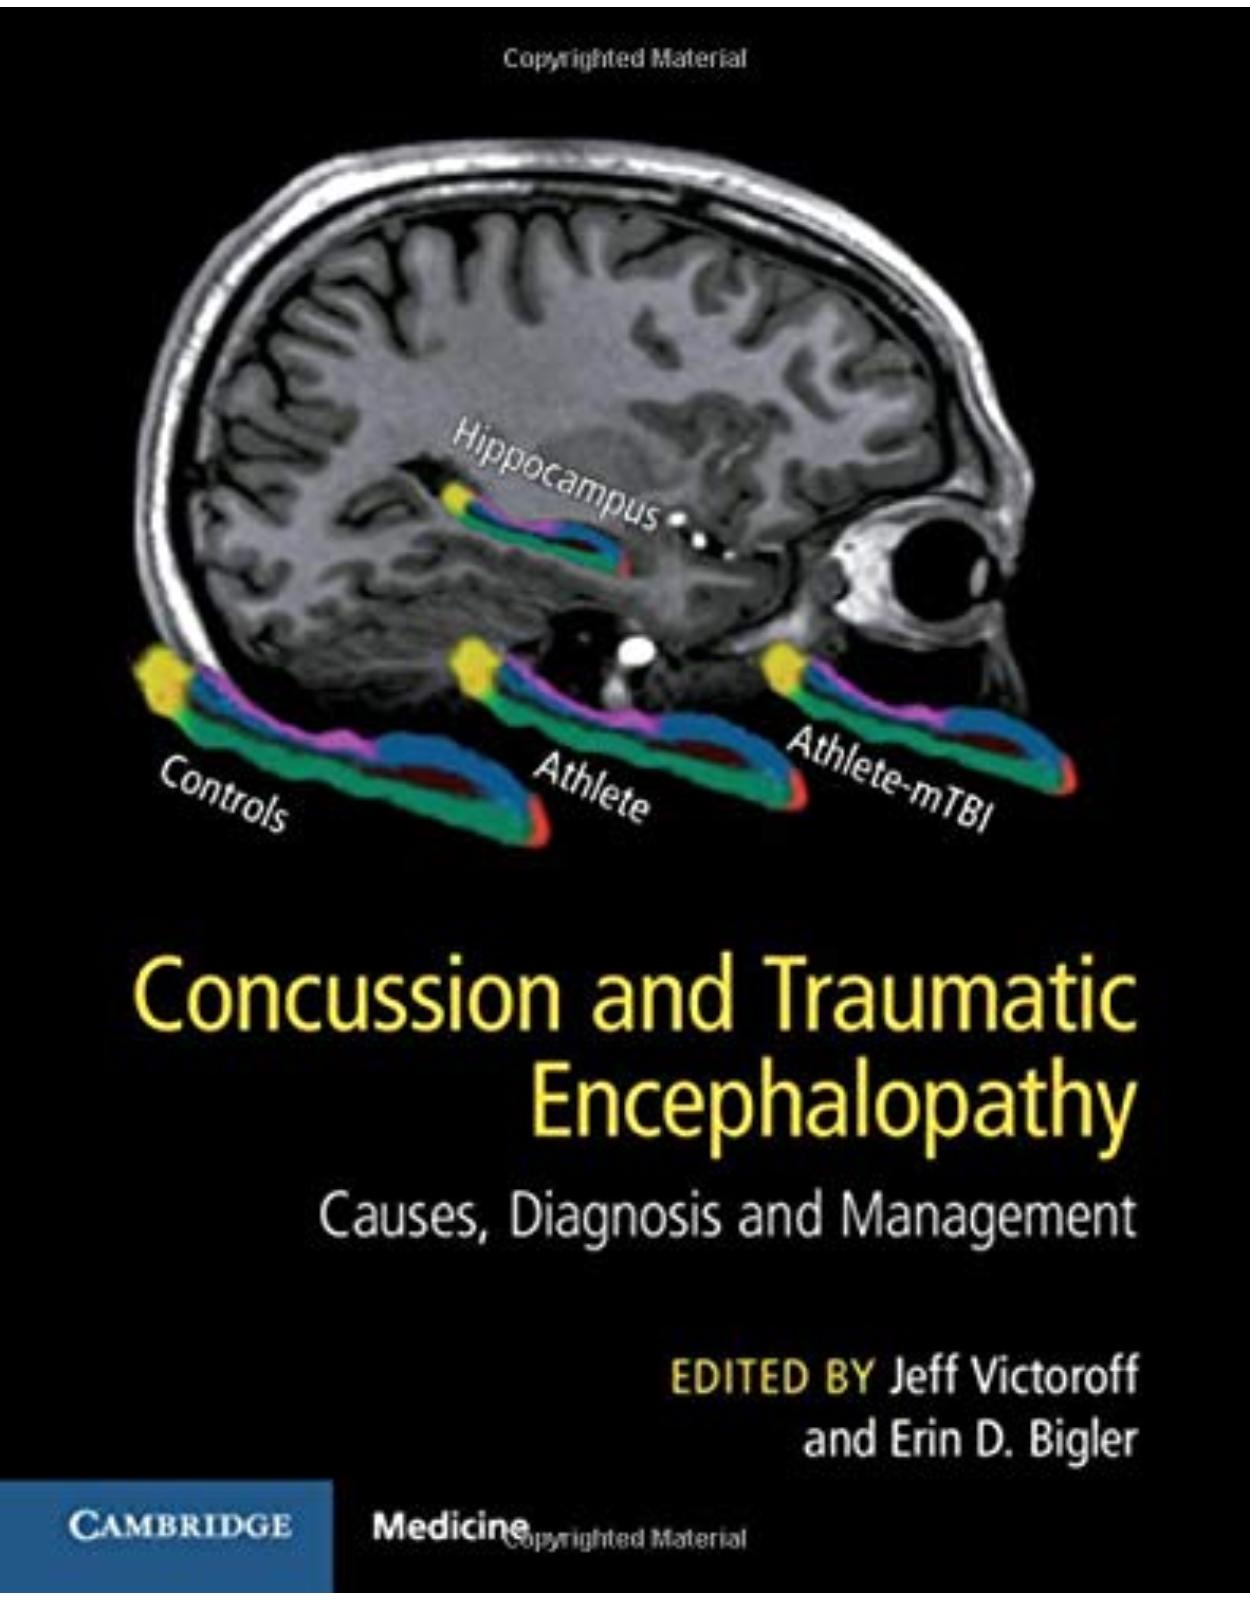 Concussion and Traumatic Encephalopathy: Causes, Diagnosis and Management